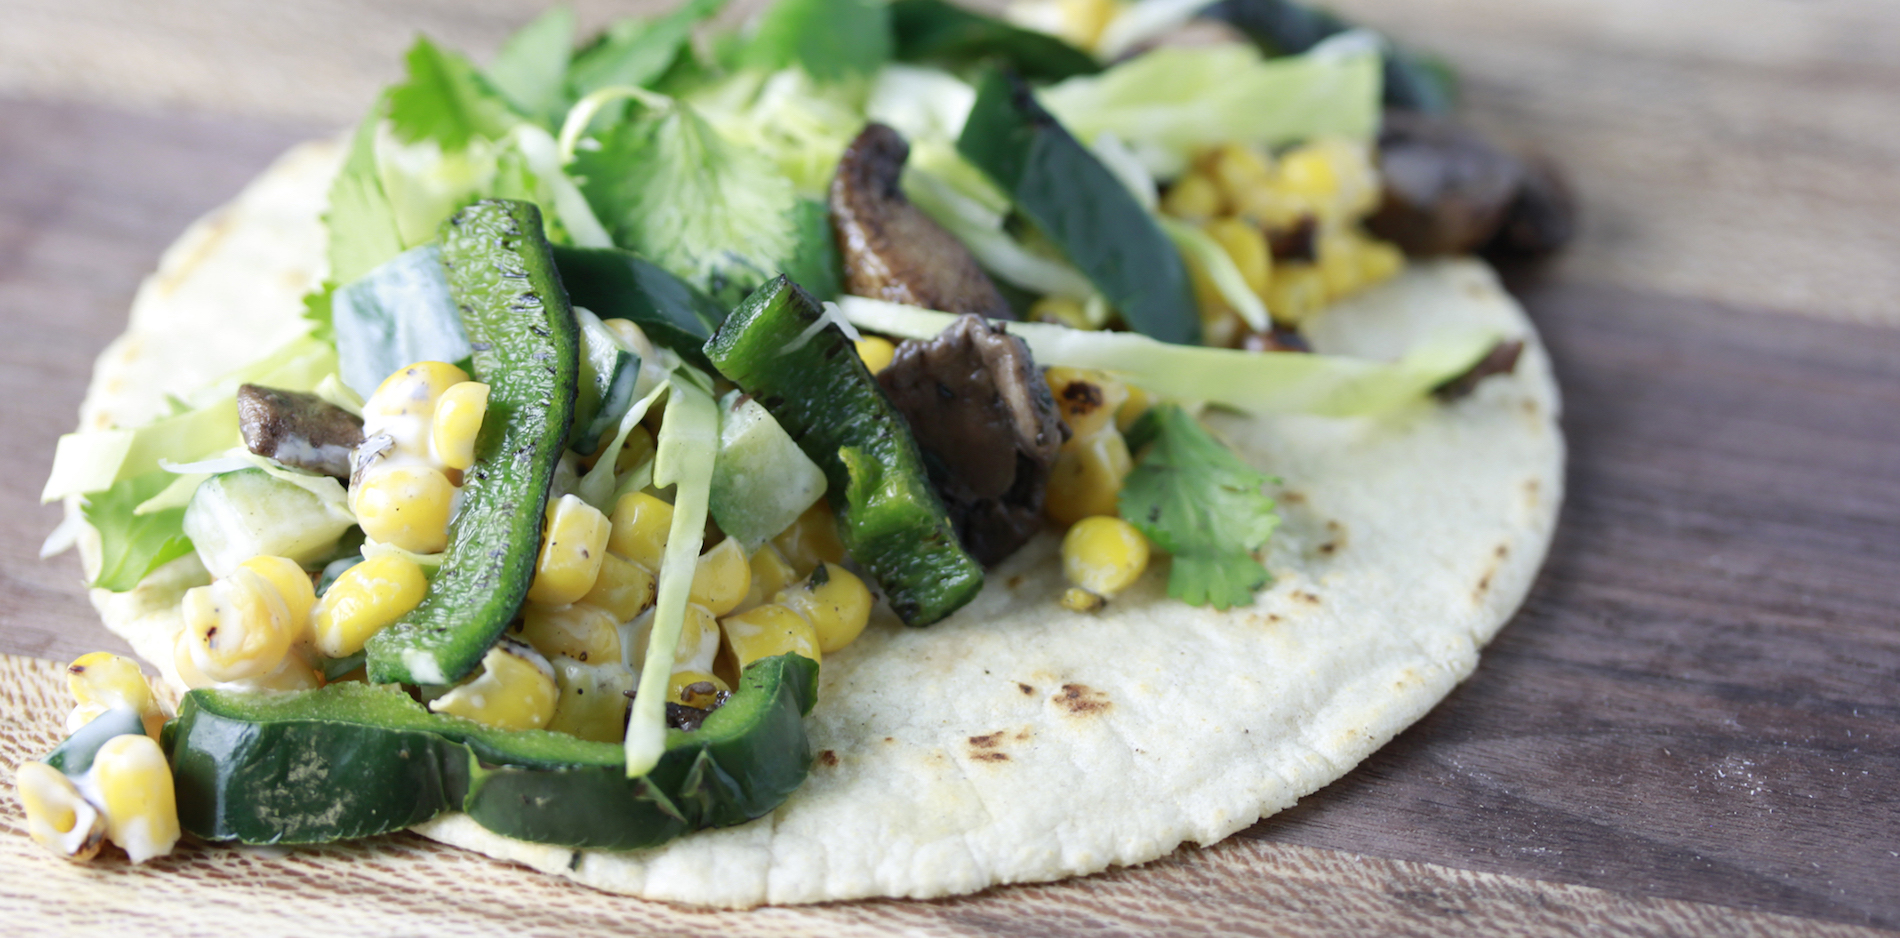 Veggie Taco made with Haliburton Fire Roasted Corn and Poblanos